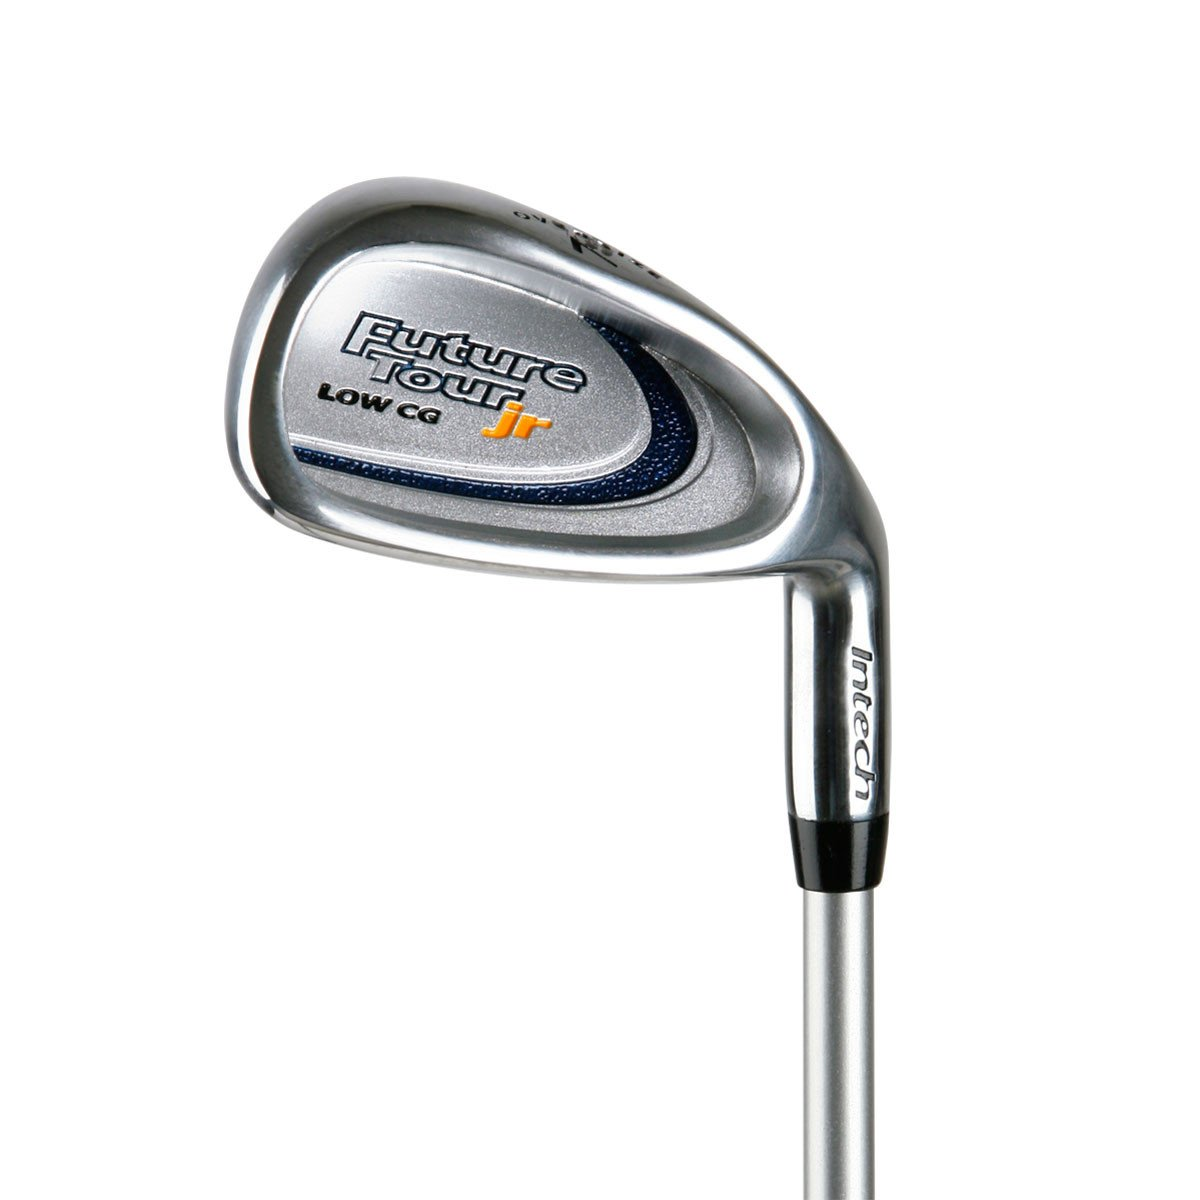 Intech Golf Future Tour Pee Wee 7 Iron (Right-Handed, Composite Shaft, Age 5 & Under) by Intech